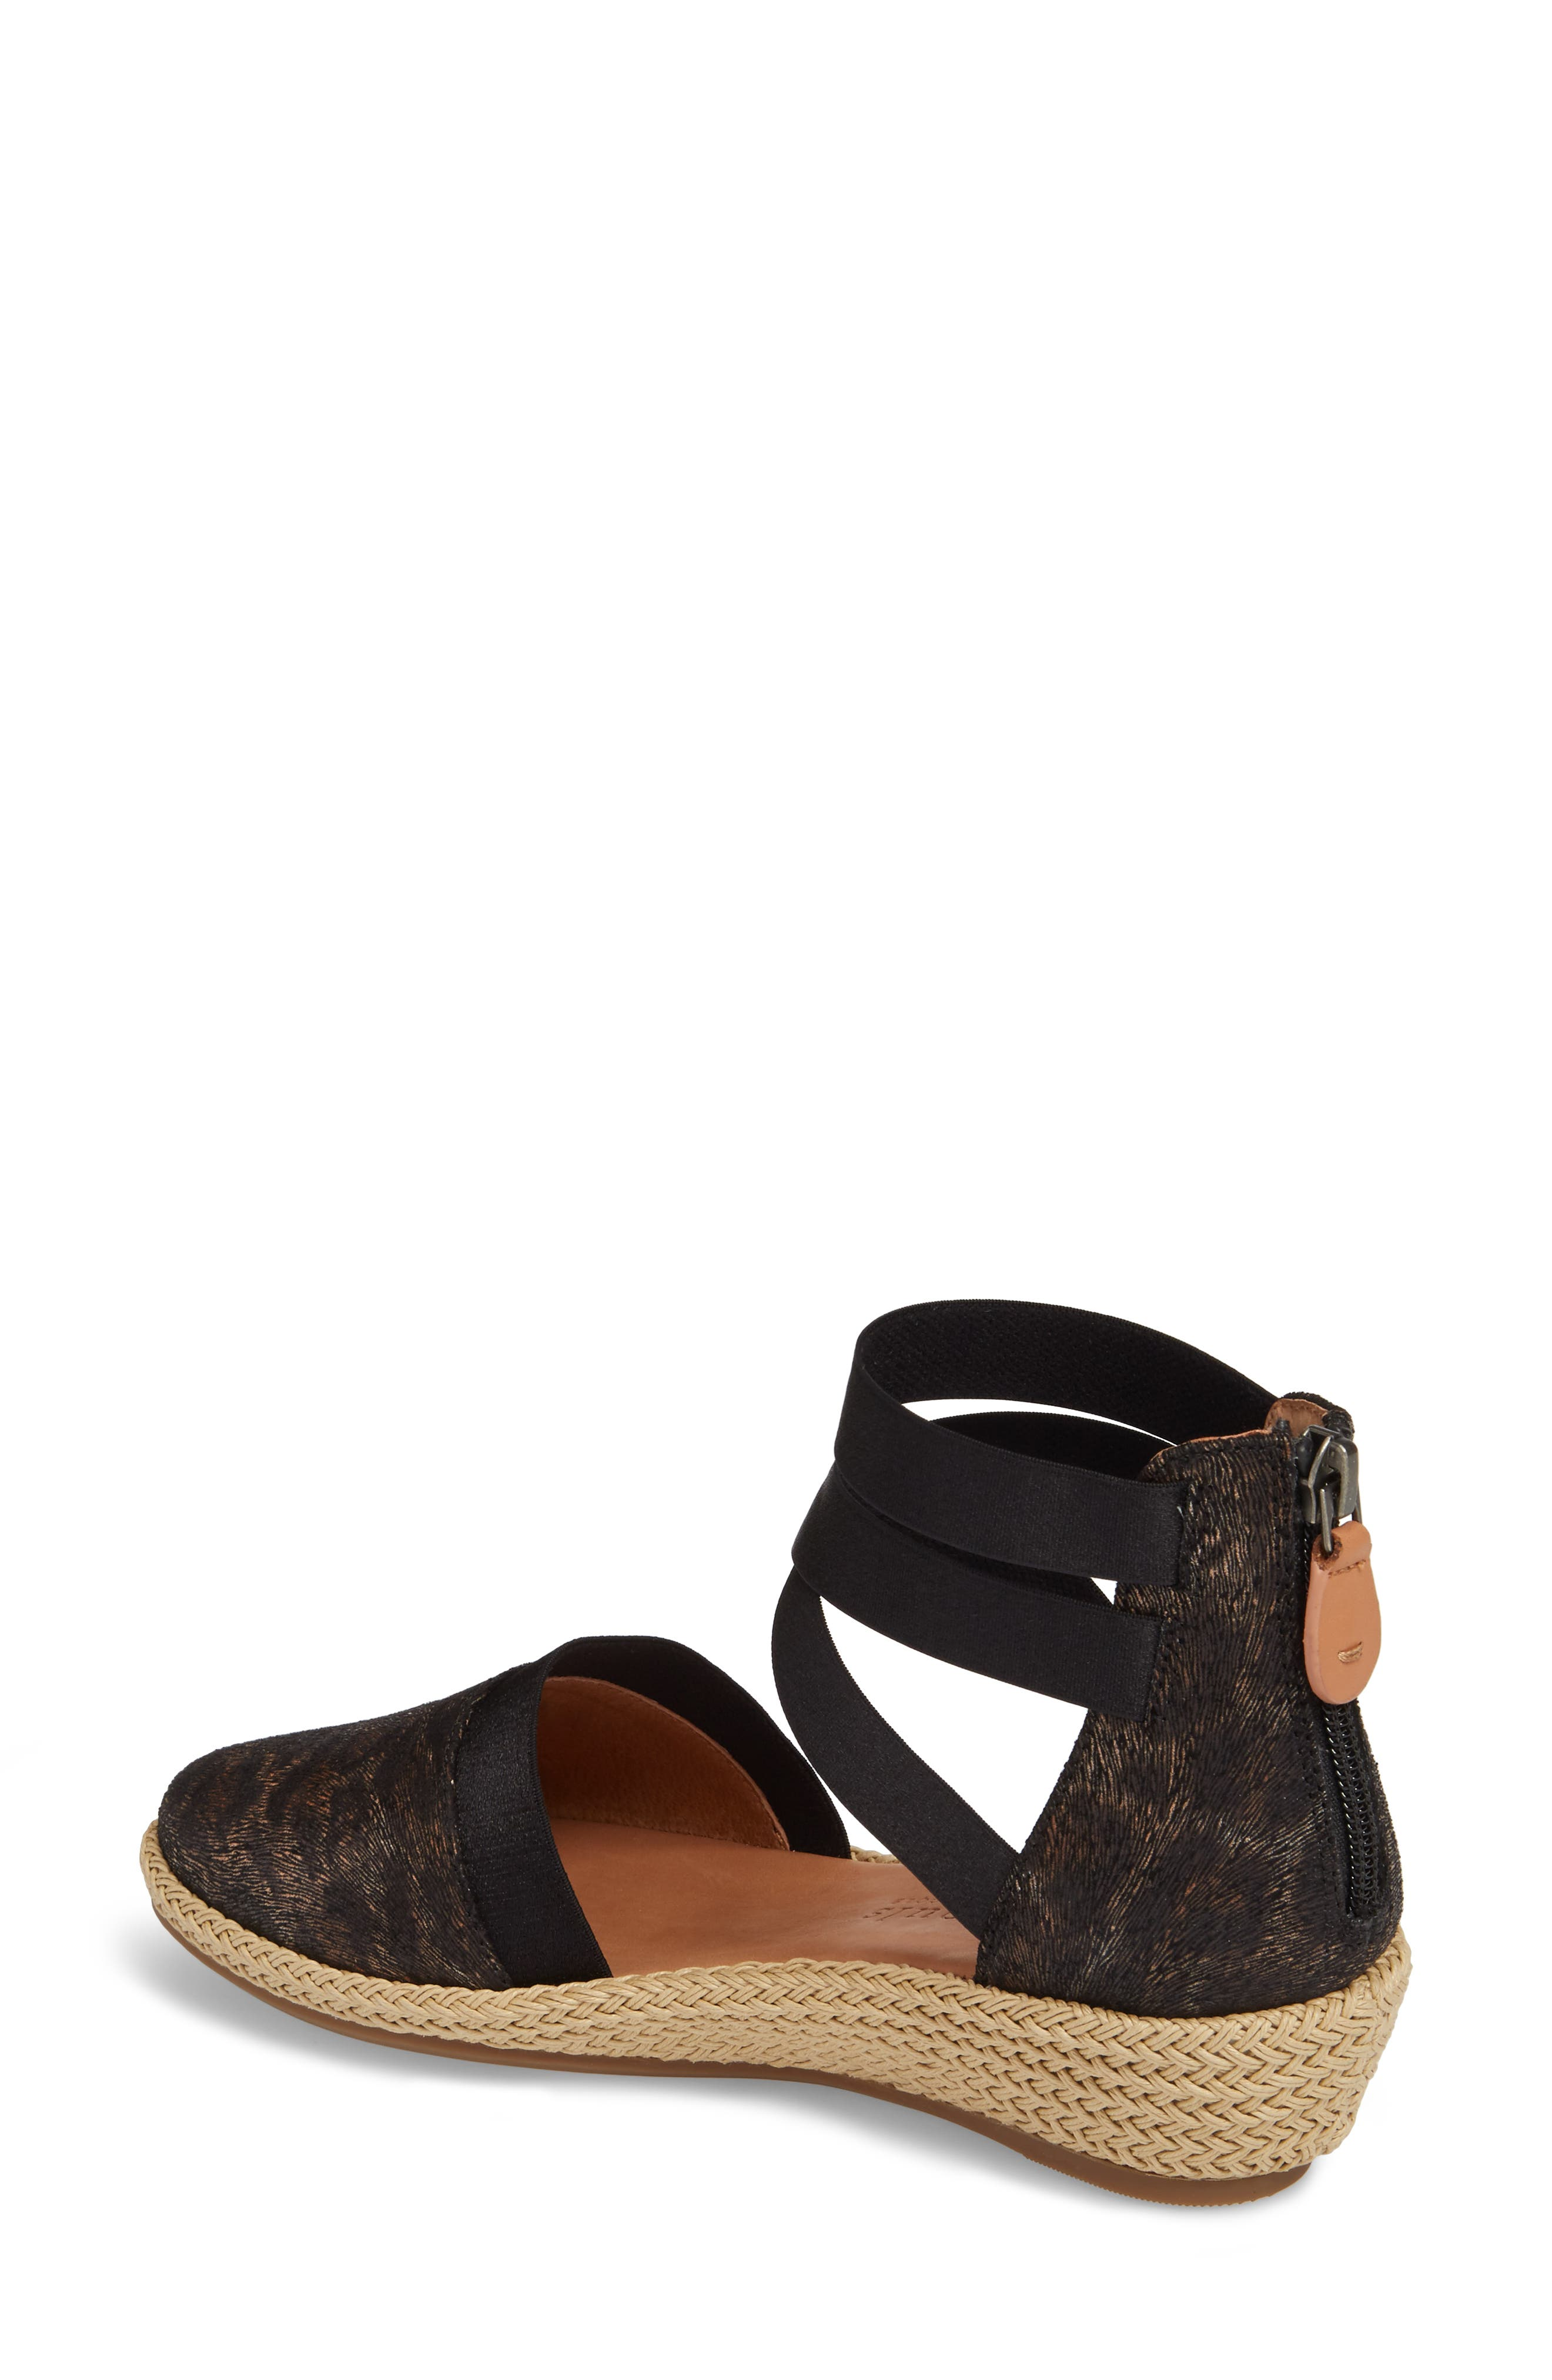 by Kenneth Cole Beth Espadrille Sandal,                             Alternate thumbnail 2, color,                             Black Leopard Printed Leather